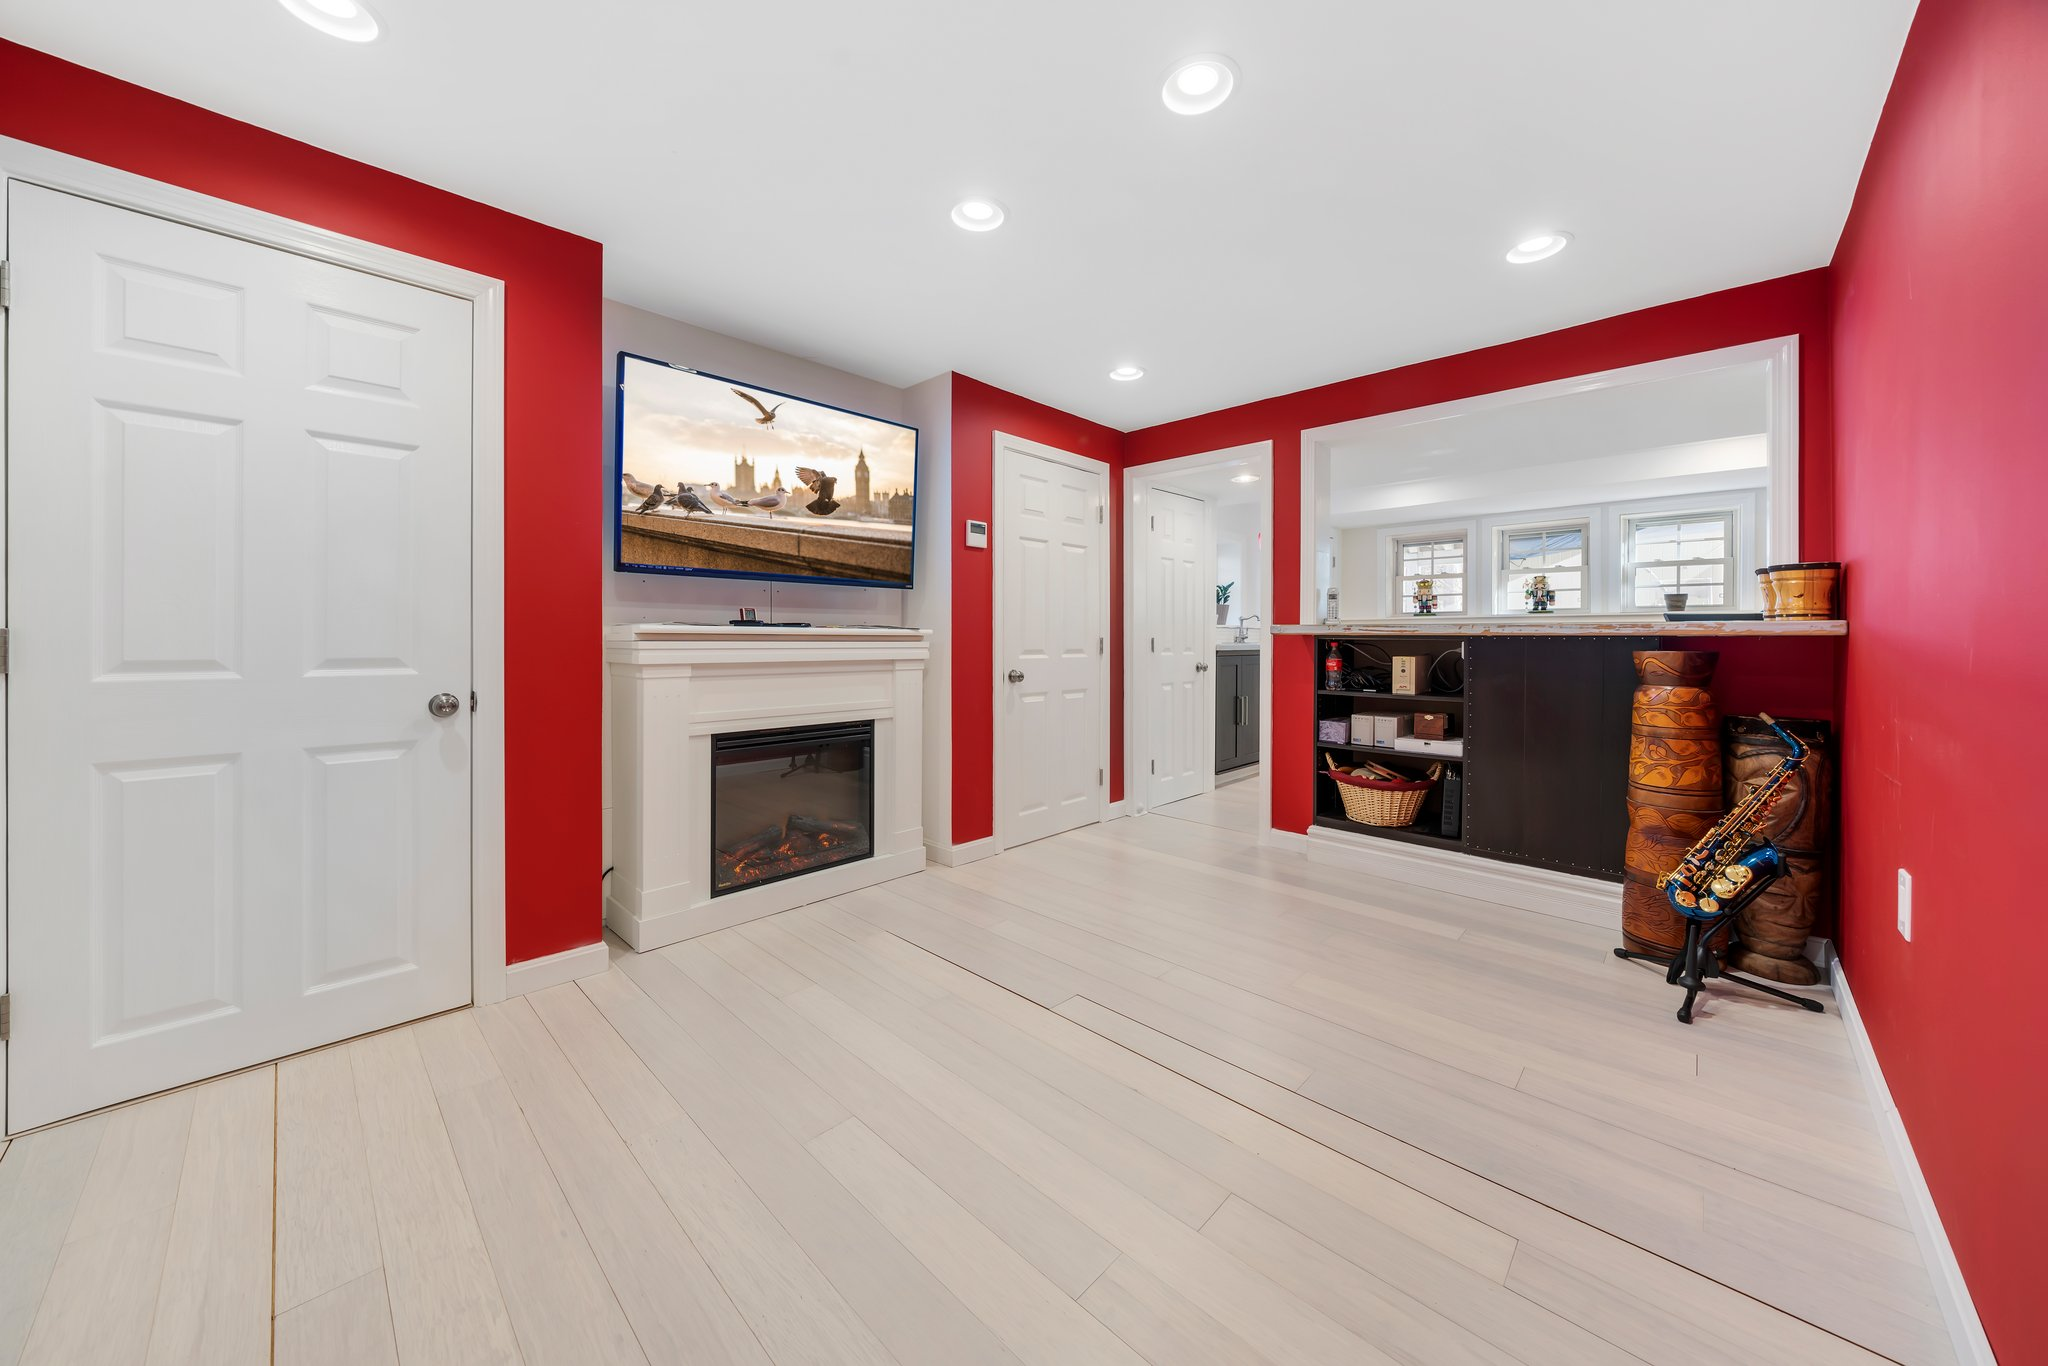 Basement space for whatever you want